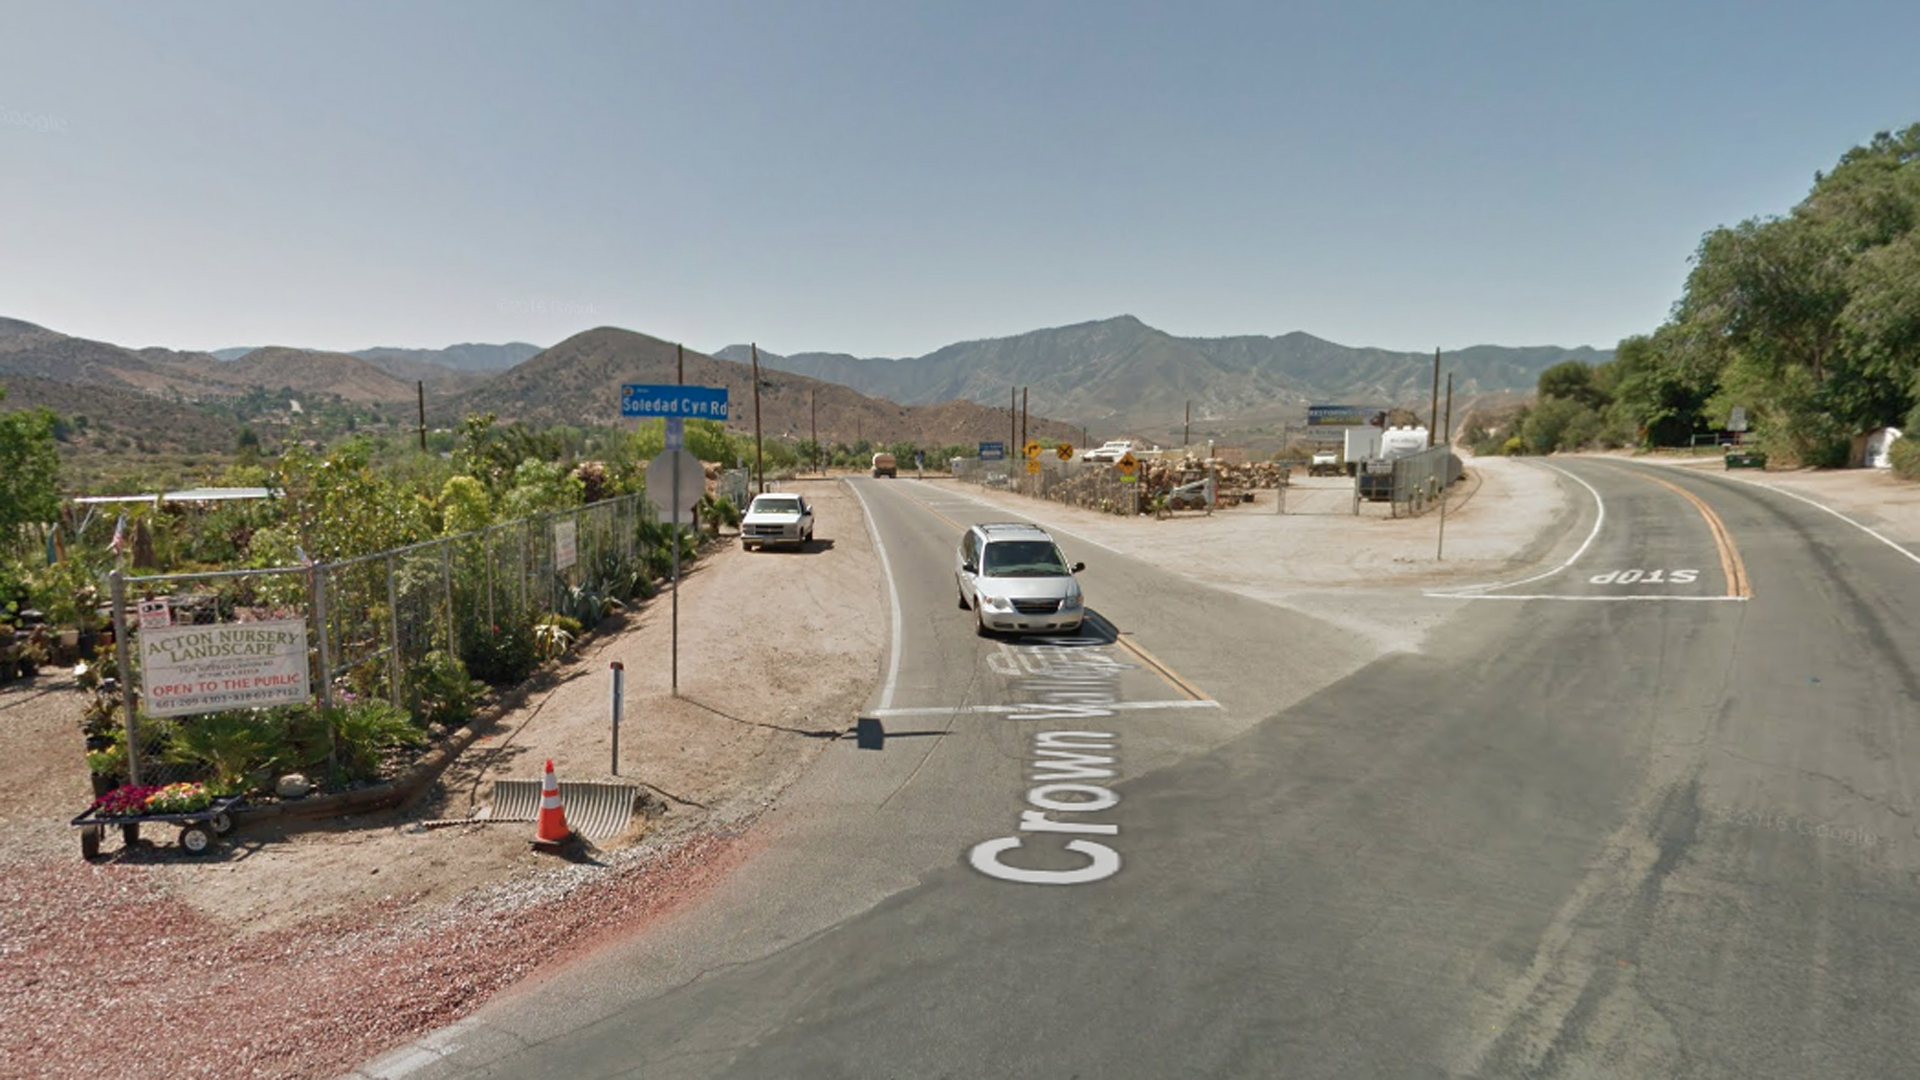 The intersection of Crown Valley Road and Soledad Canyon Road in Acton, as viewed in a Google Street View image.